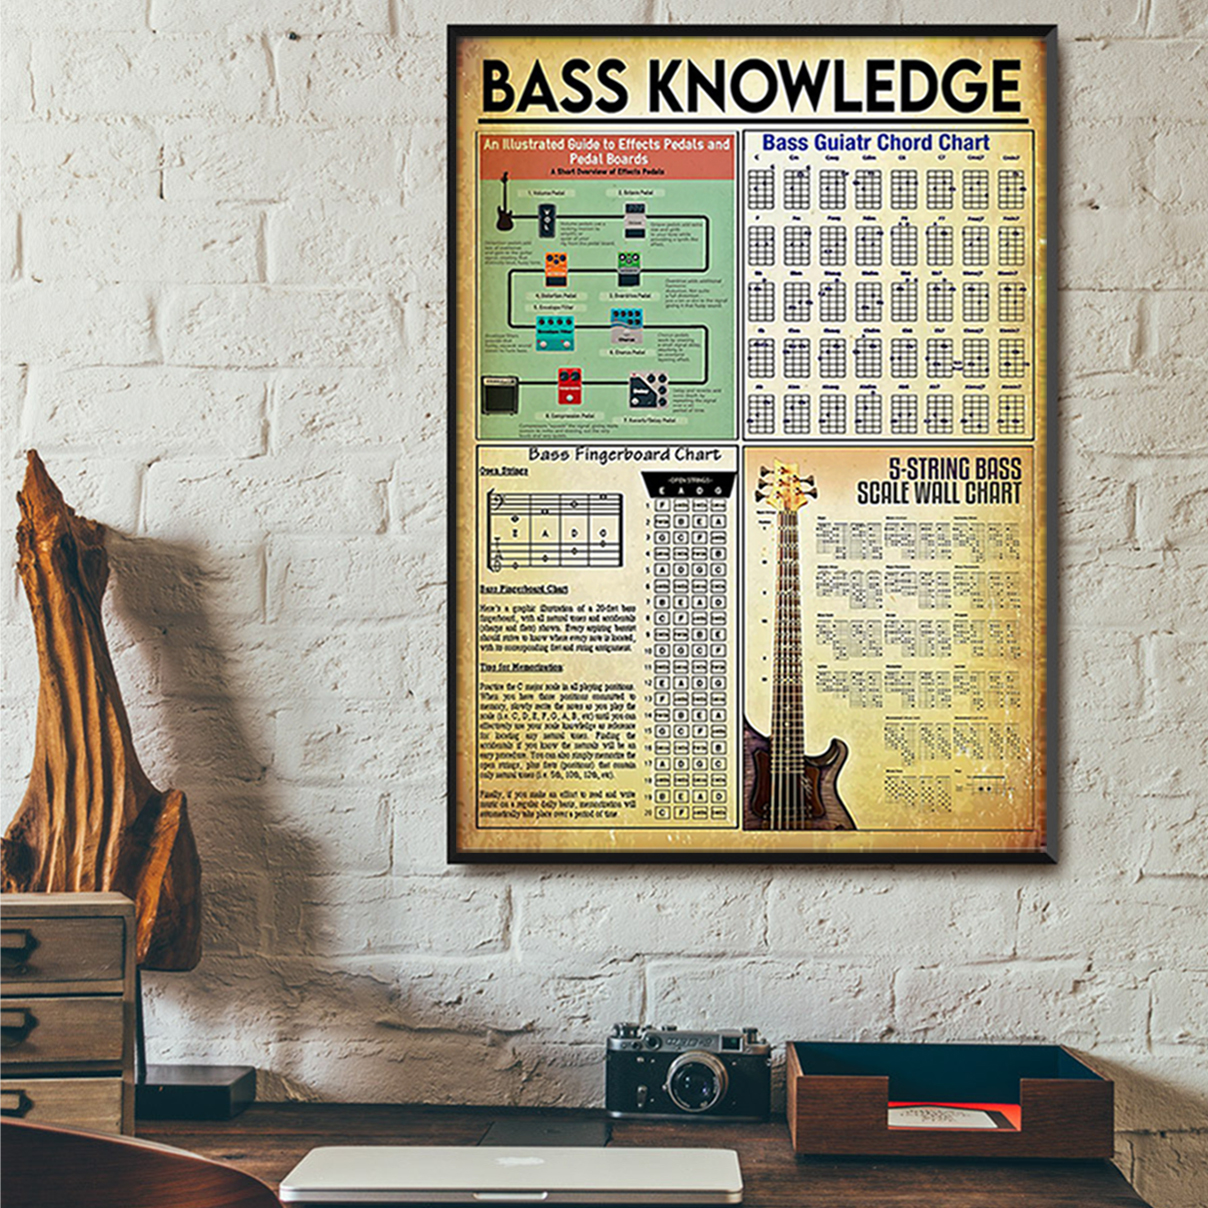 Bass guitar knowledge poster A1